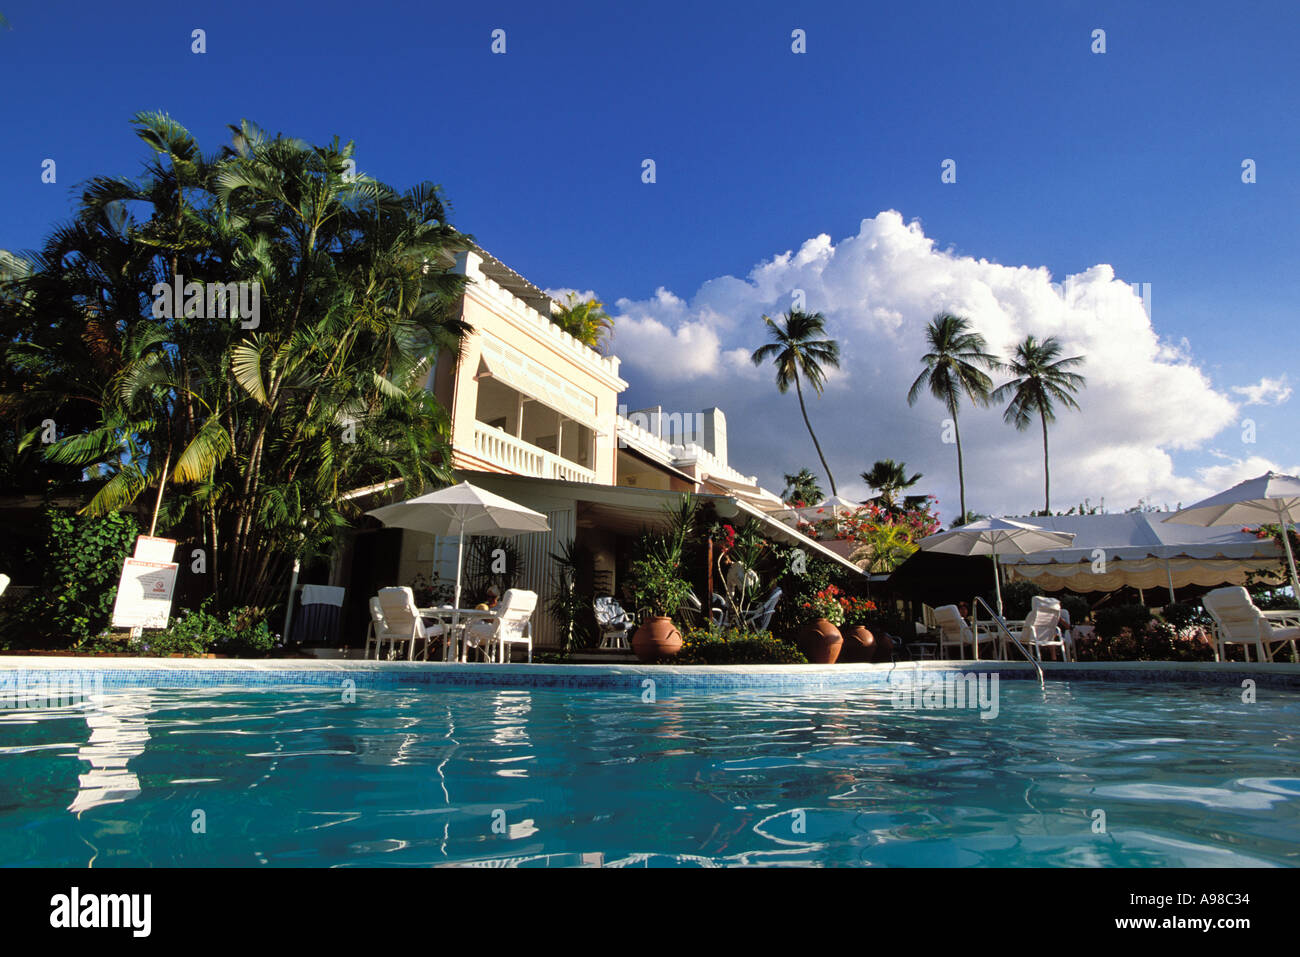 Barbados, St Peter, Cobblers Cove Stock Photo